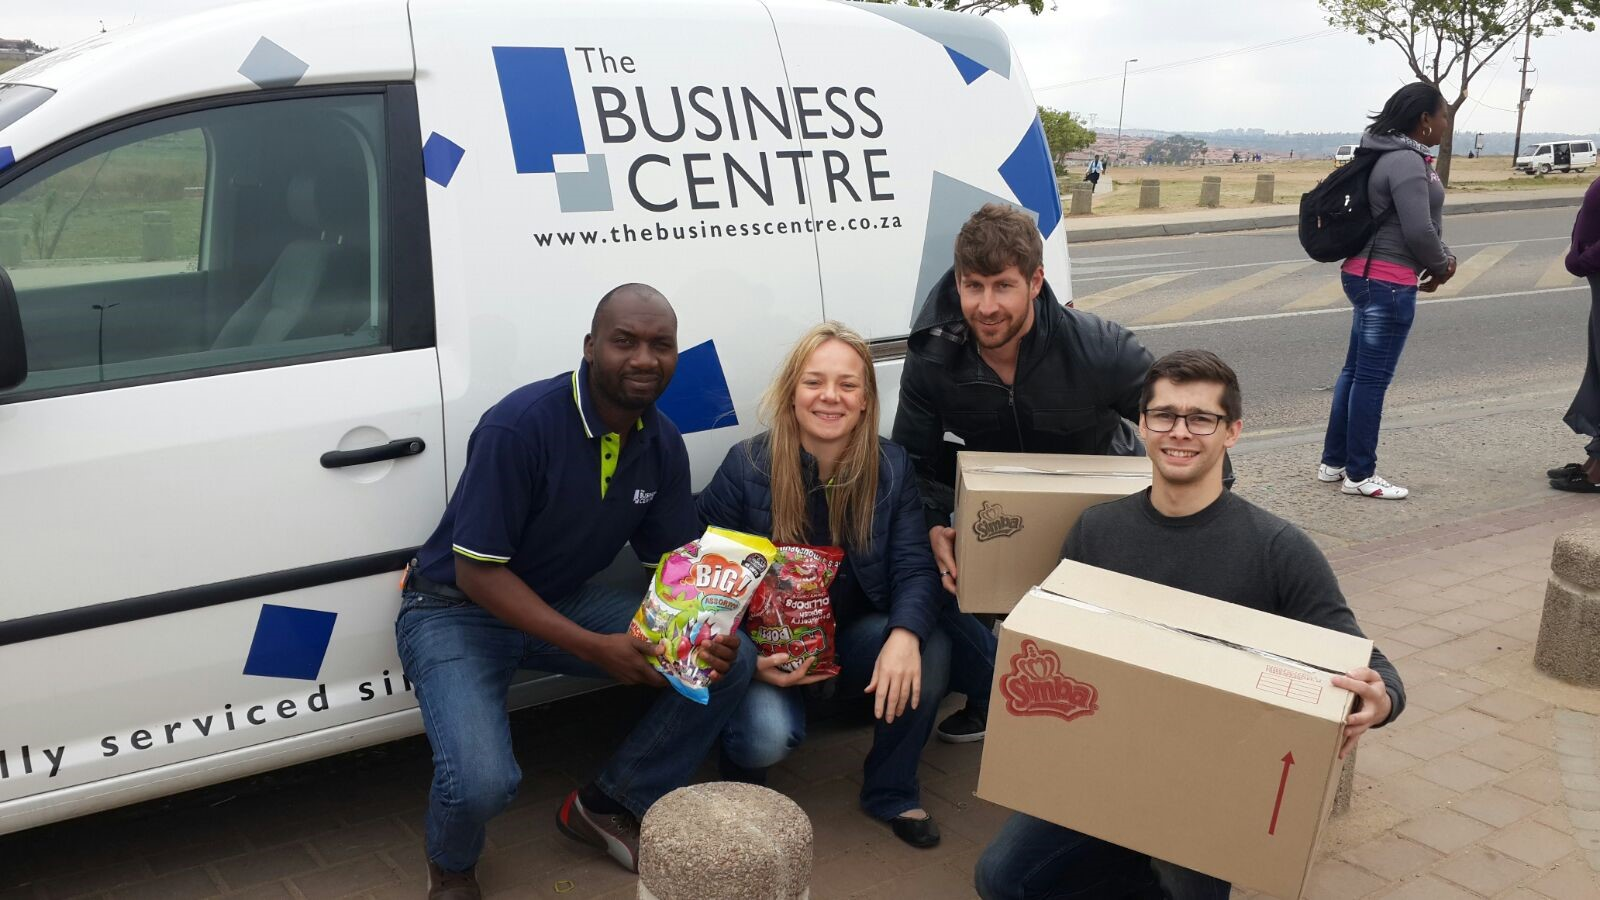 The Business Centre Team: Lloyd Ncube, Liza Du Pisanie, Jean Tarbuck, Sascha Albany